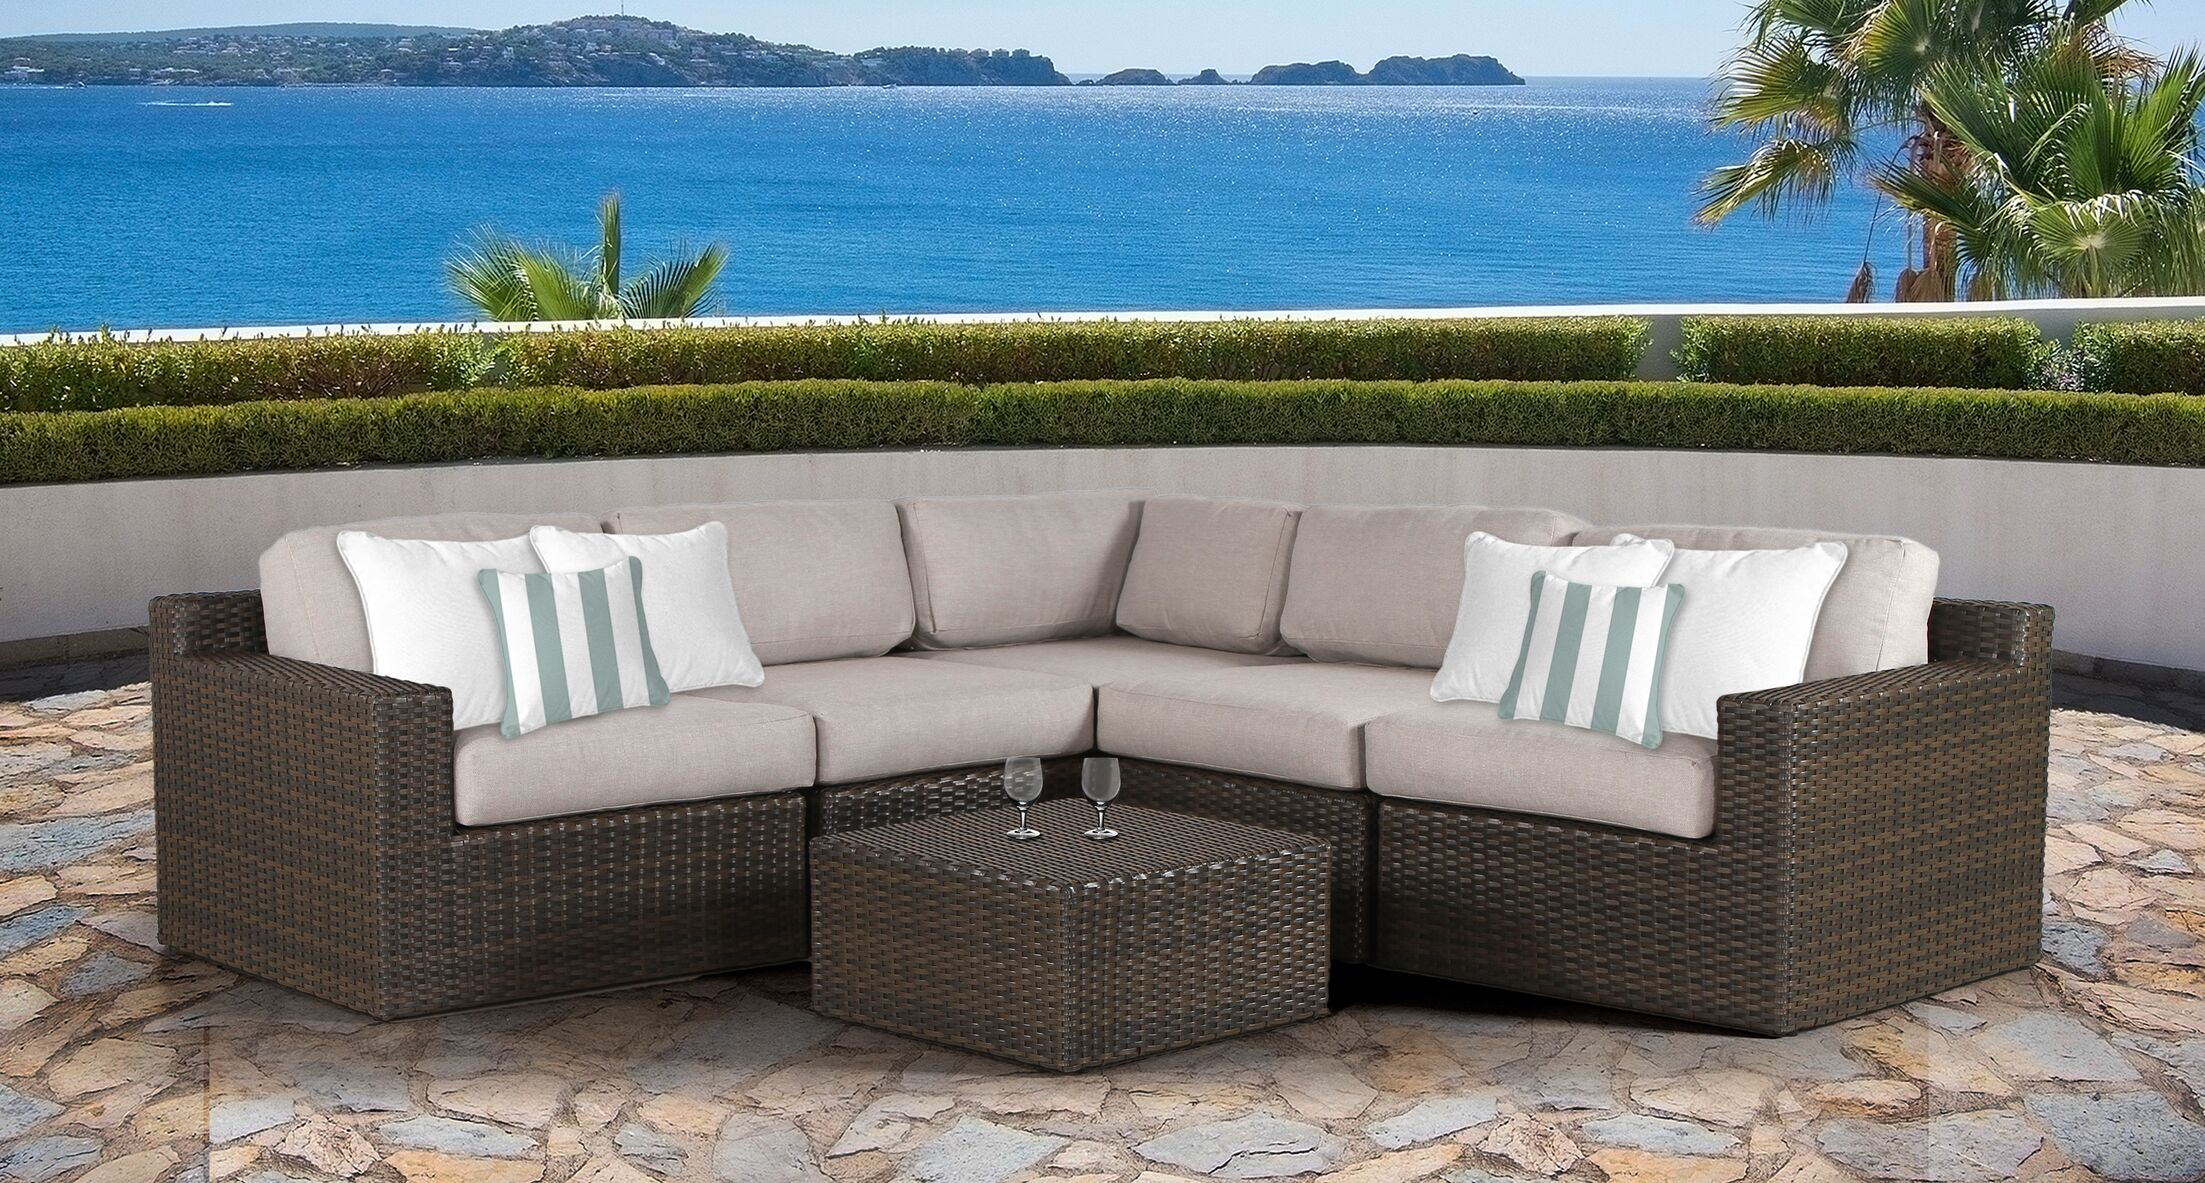 Sabin 6 Piece Sectional Set with Cushions Frame Color: Gray